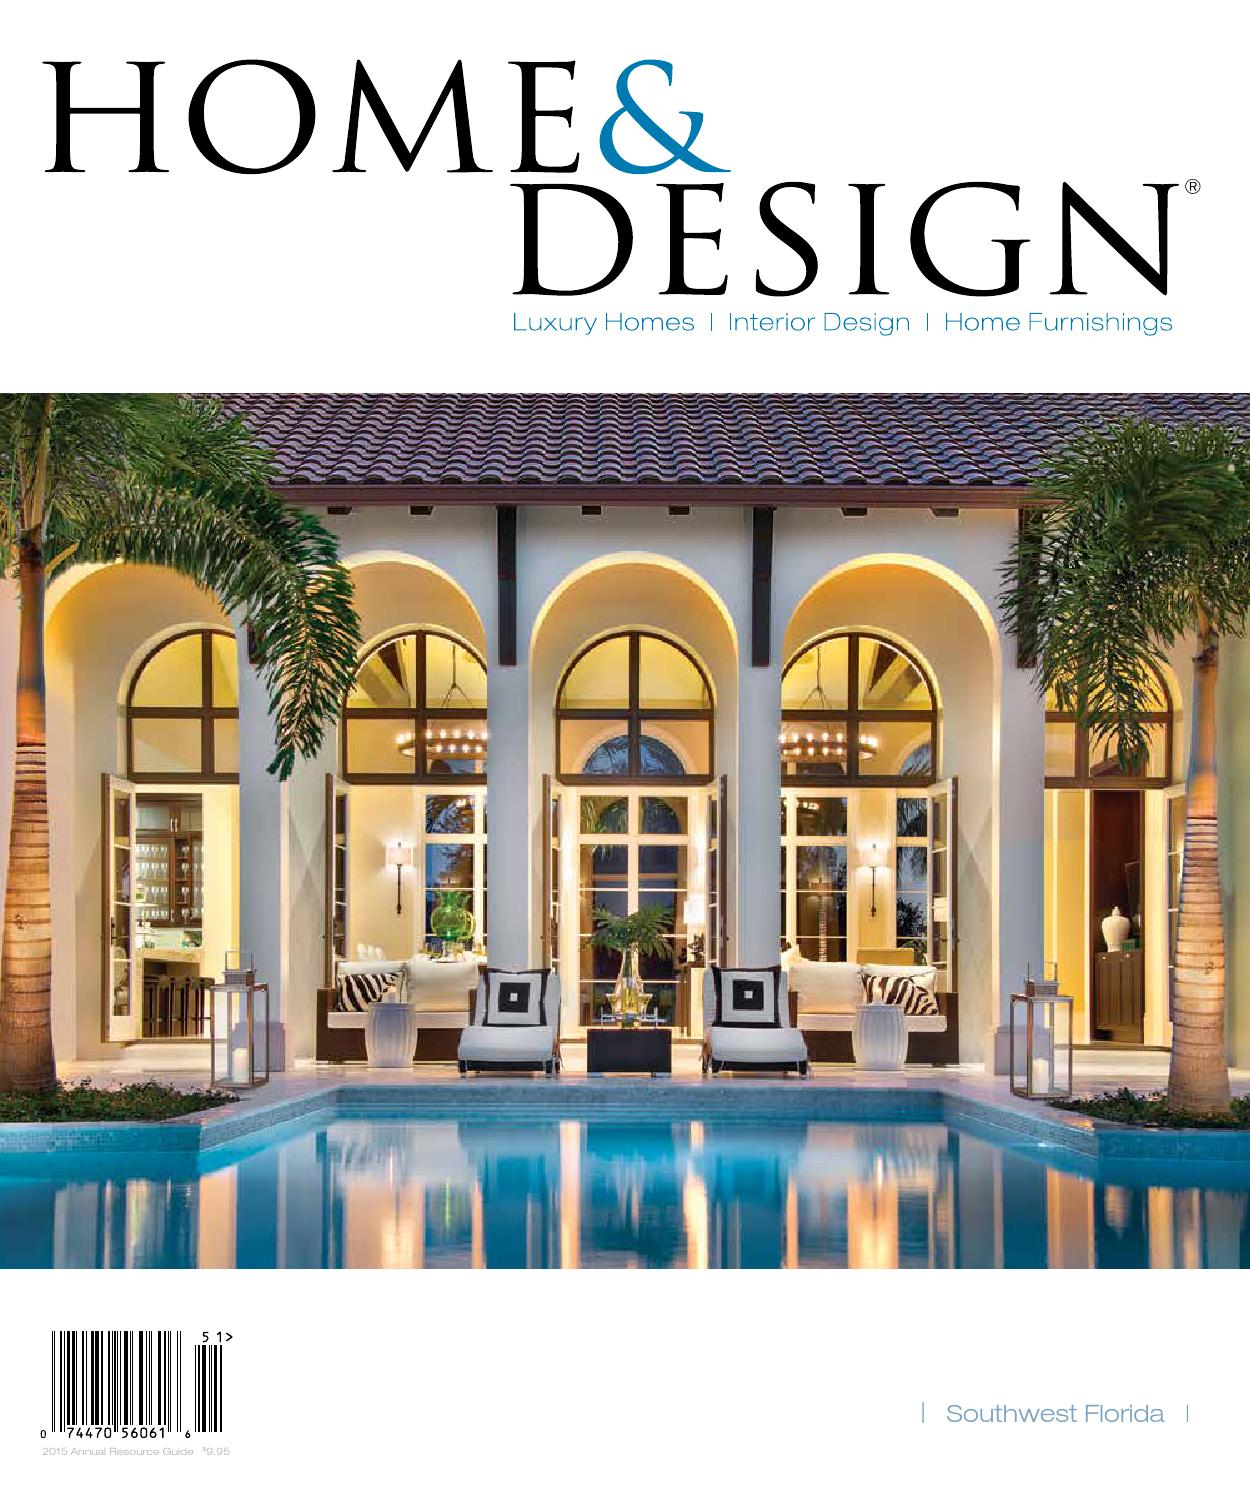 Home Design Magazine Annual Resource Guide Southwest